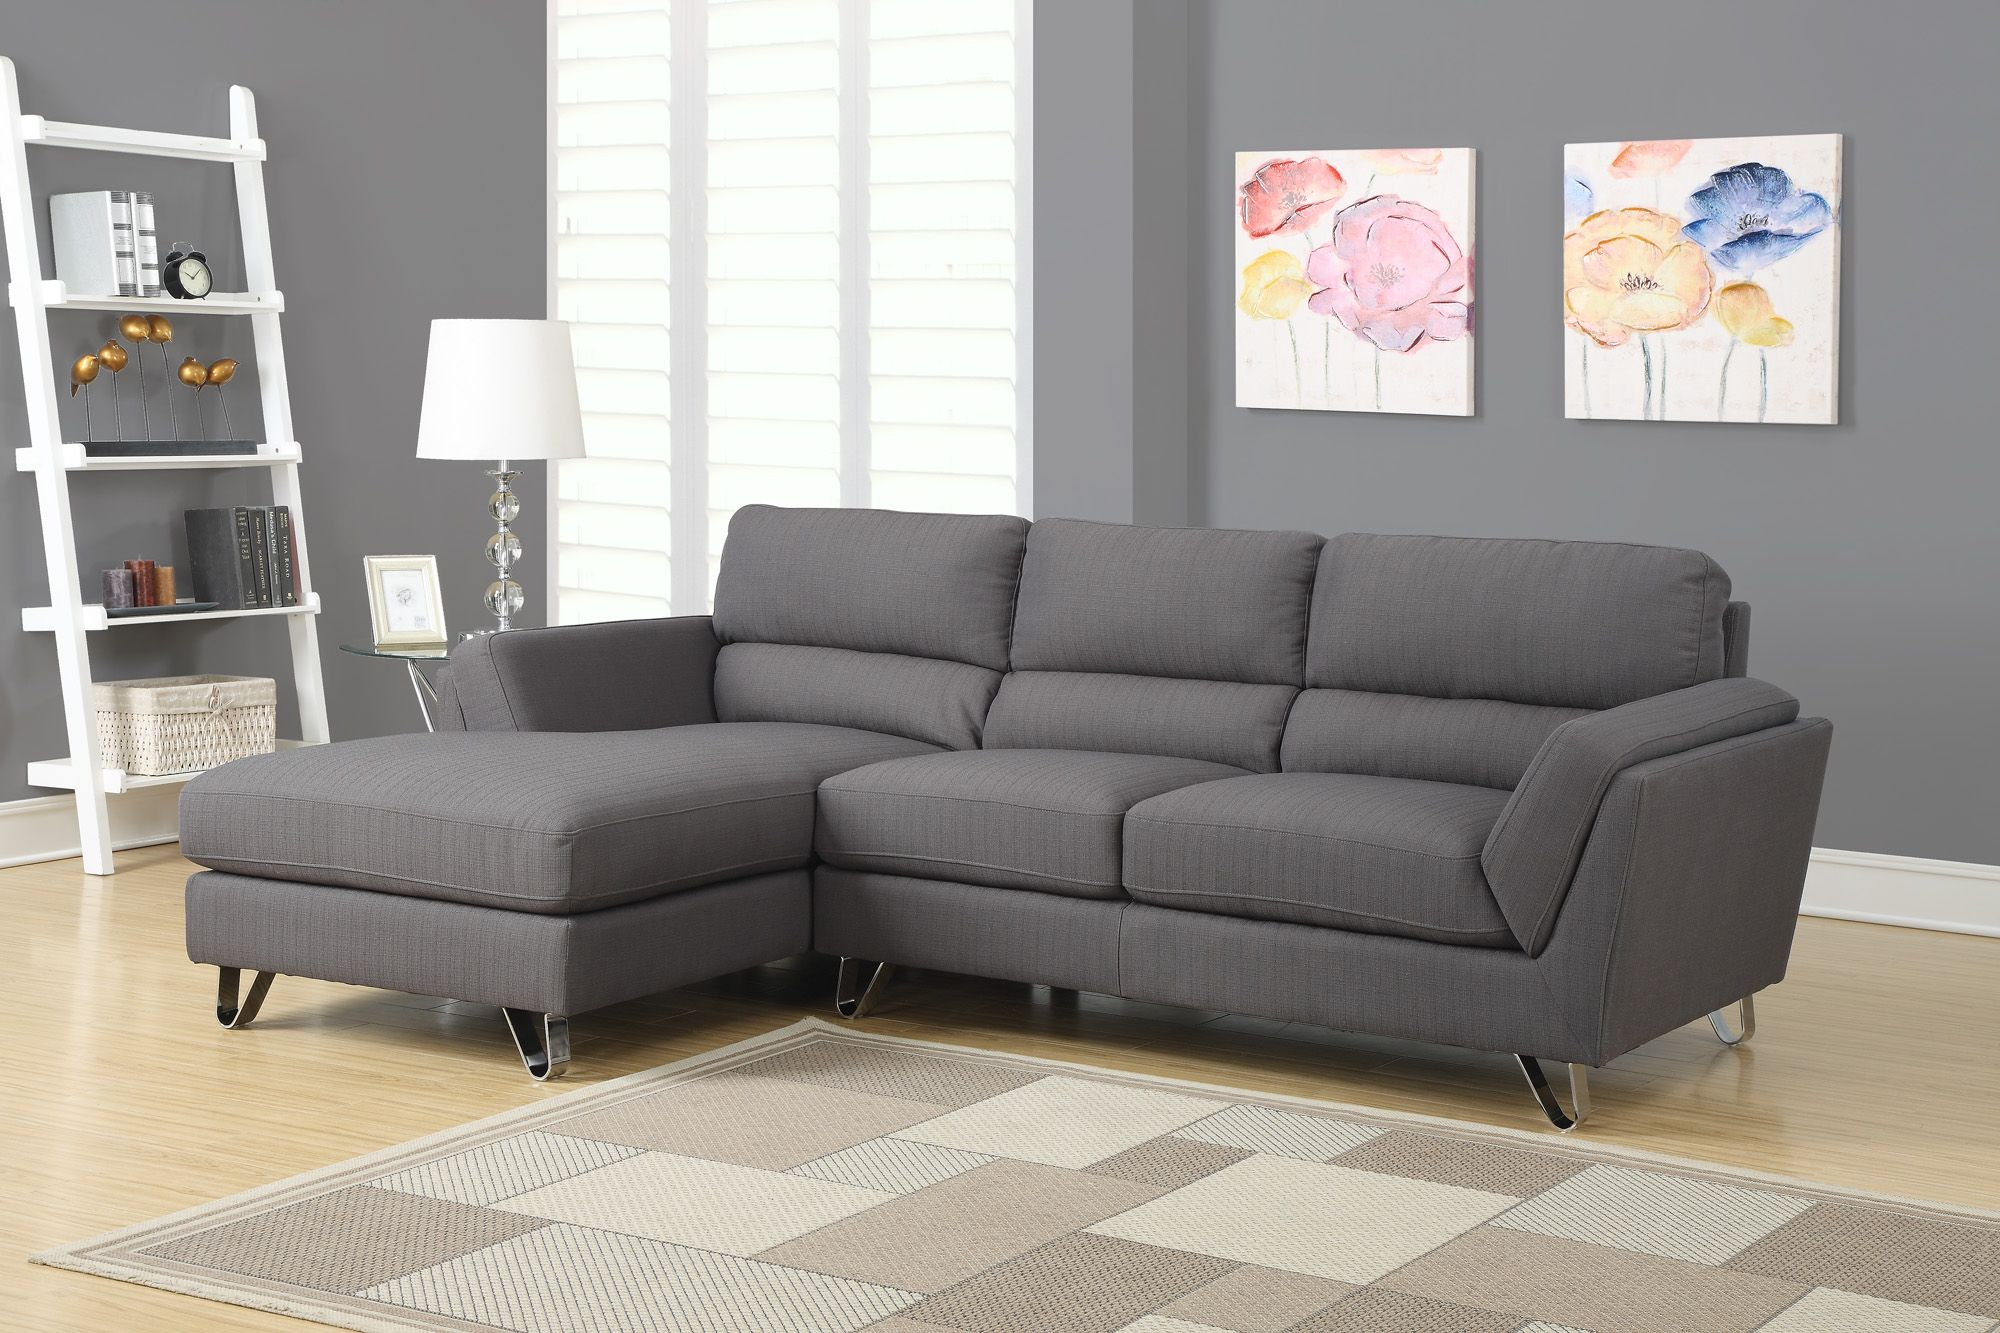 Sofa de repos en tissu gris fonc charcoal gray linen for Liquidation sofa sectionnel